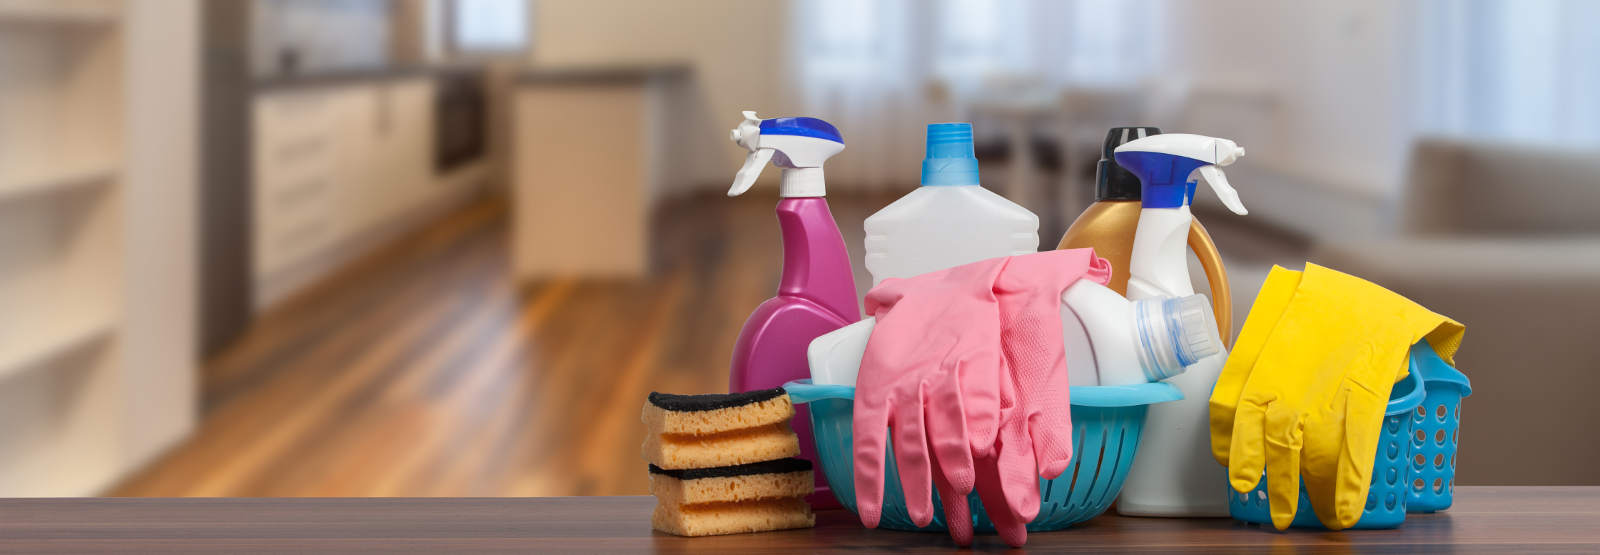 Best Apartment Cleaning Service in Washington - Delacruz